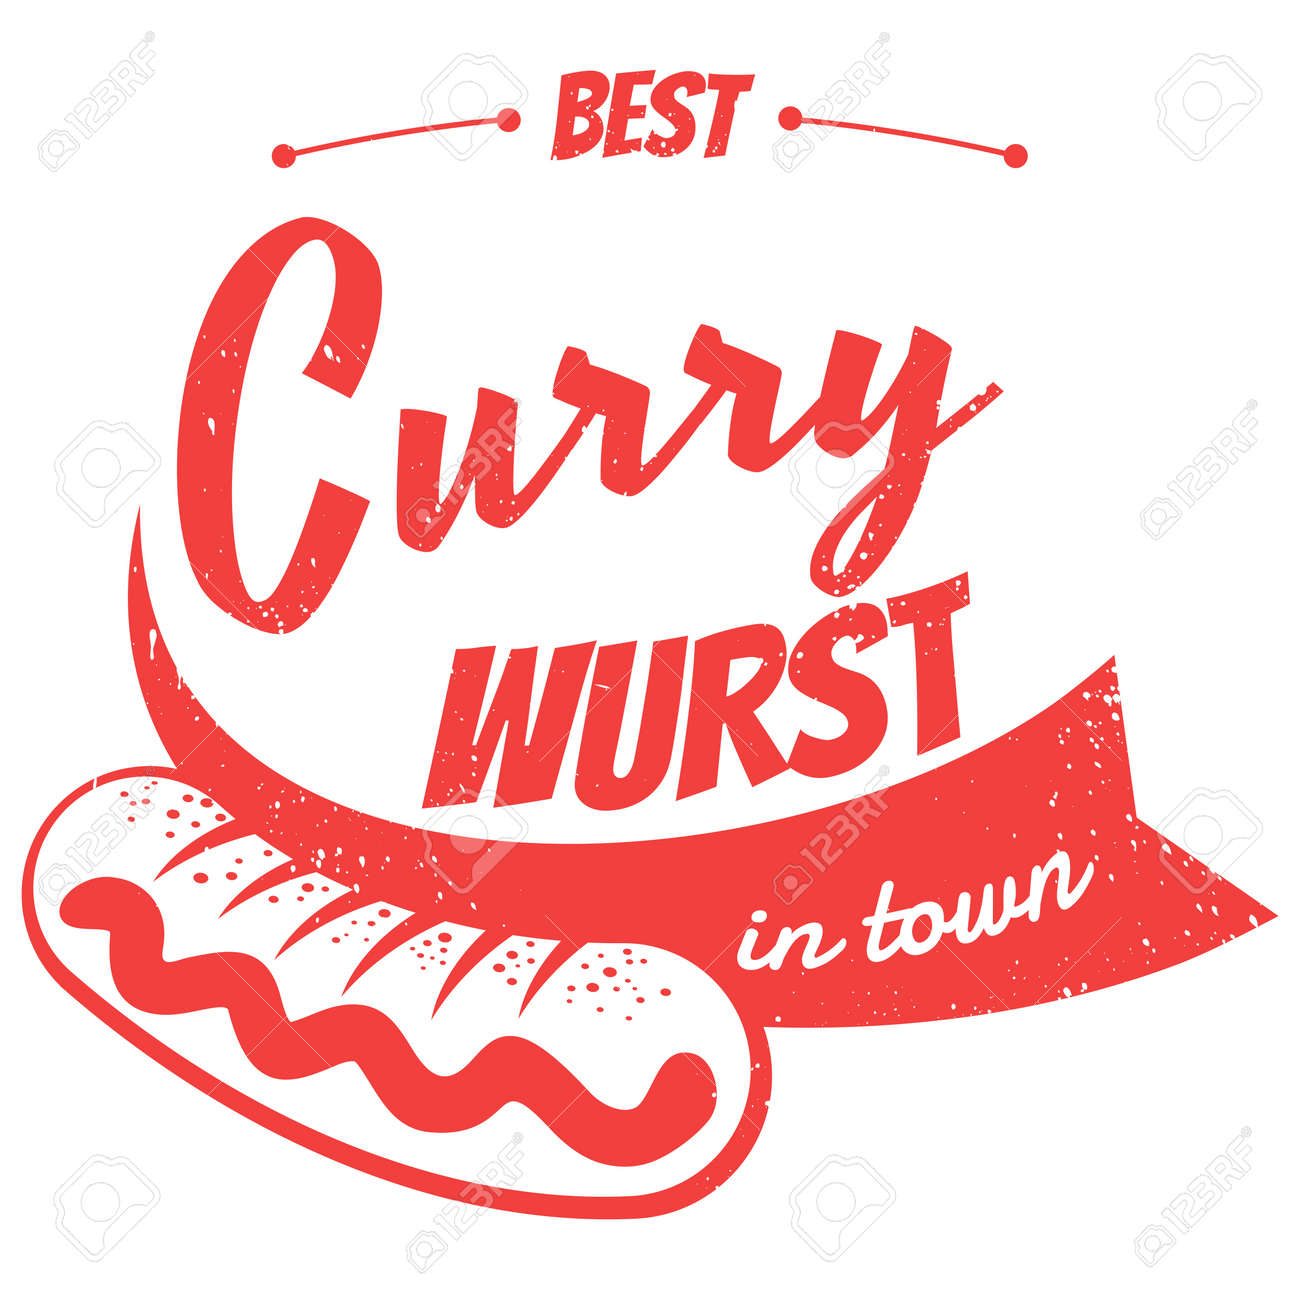 Deutsch Currywurst Standard-Bild - 21645959